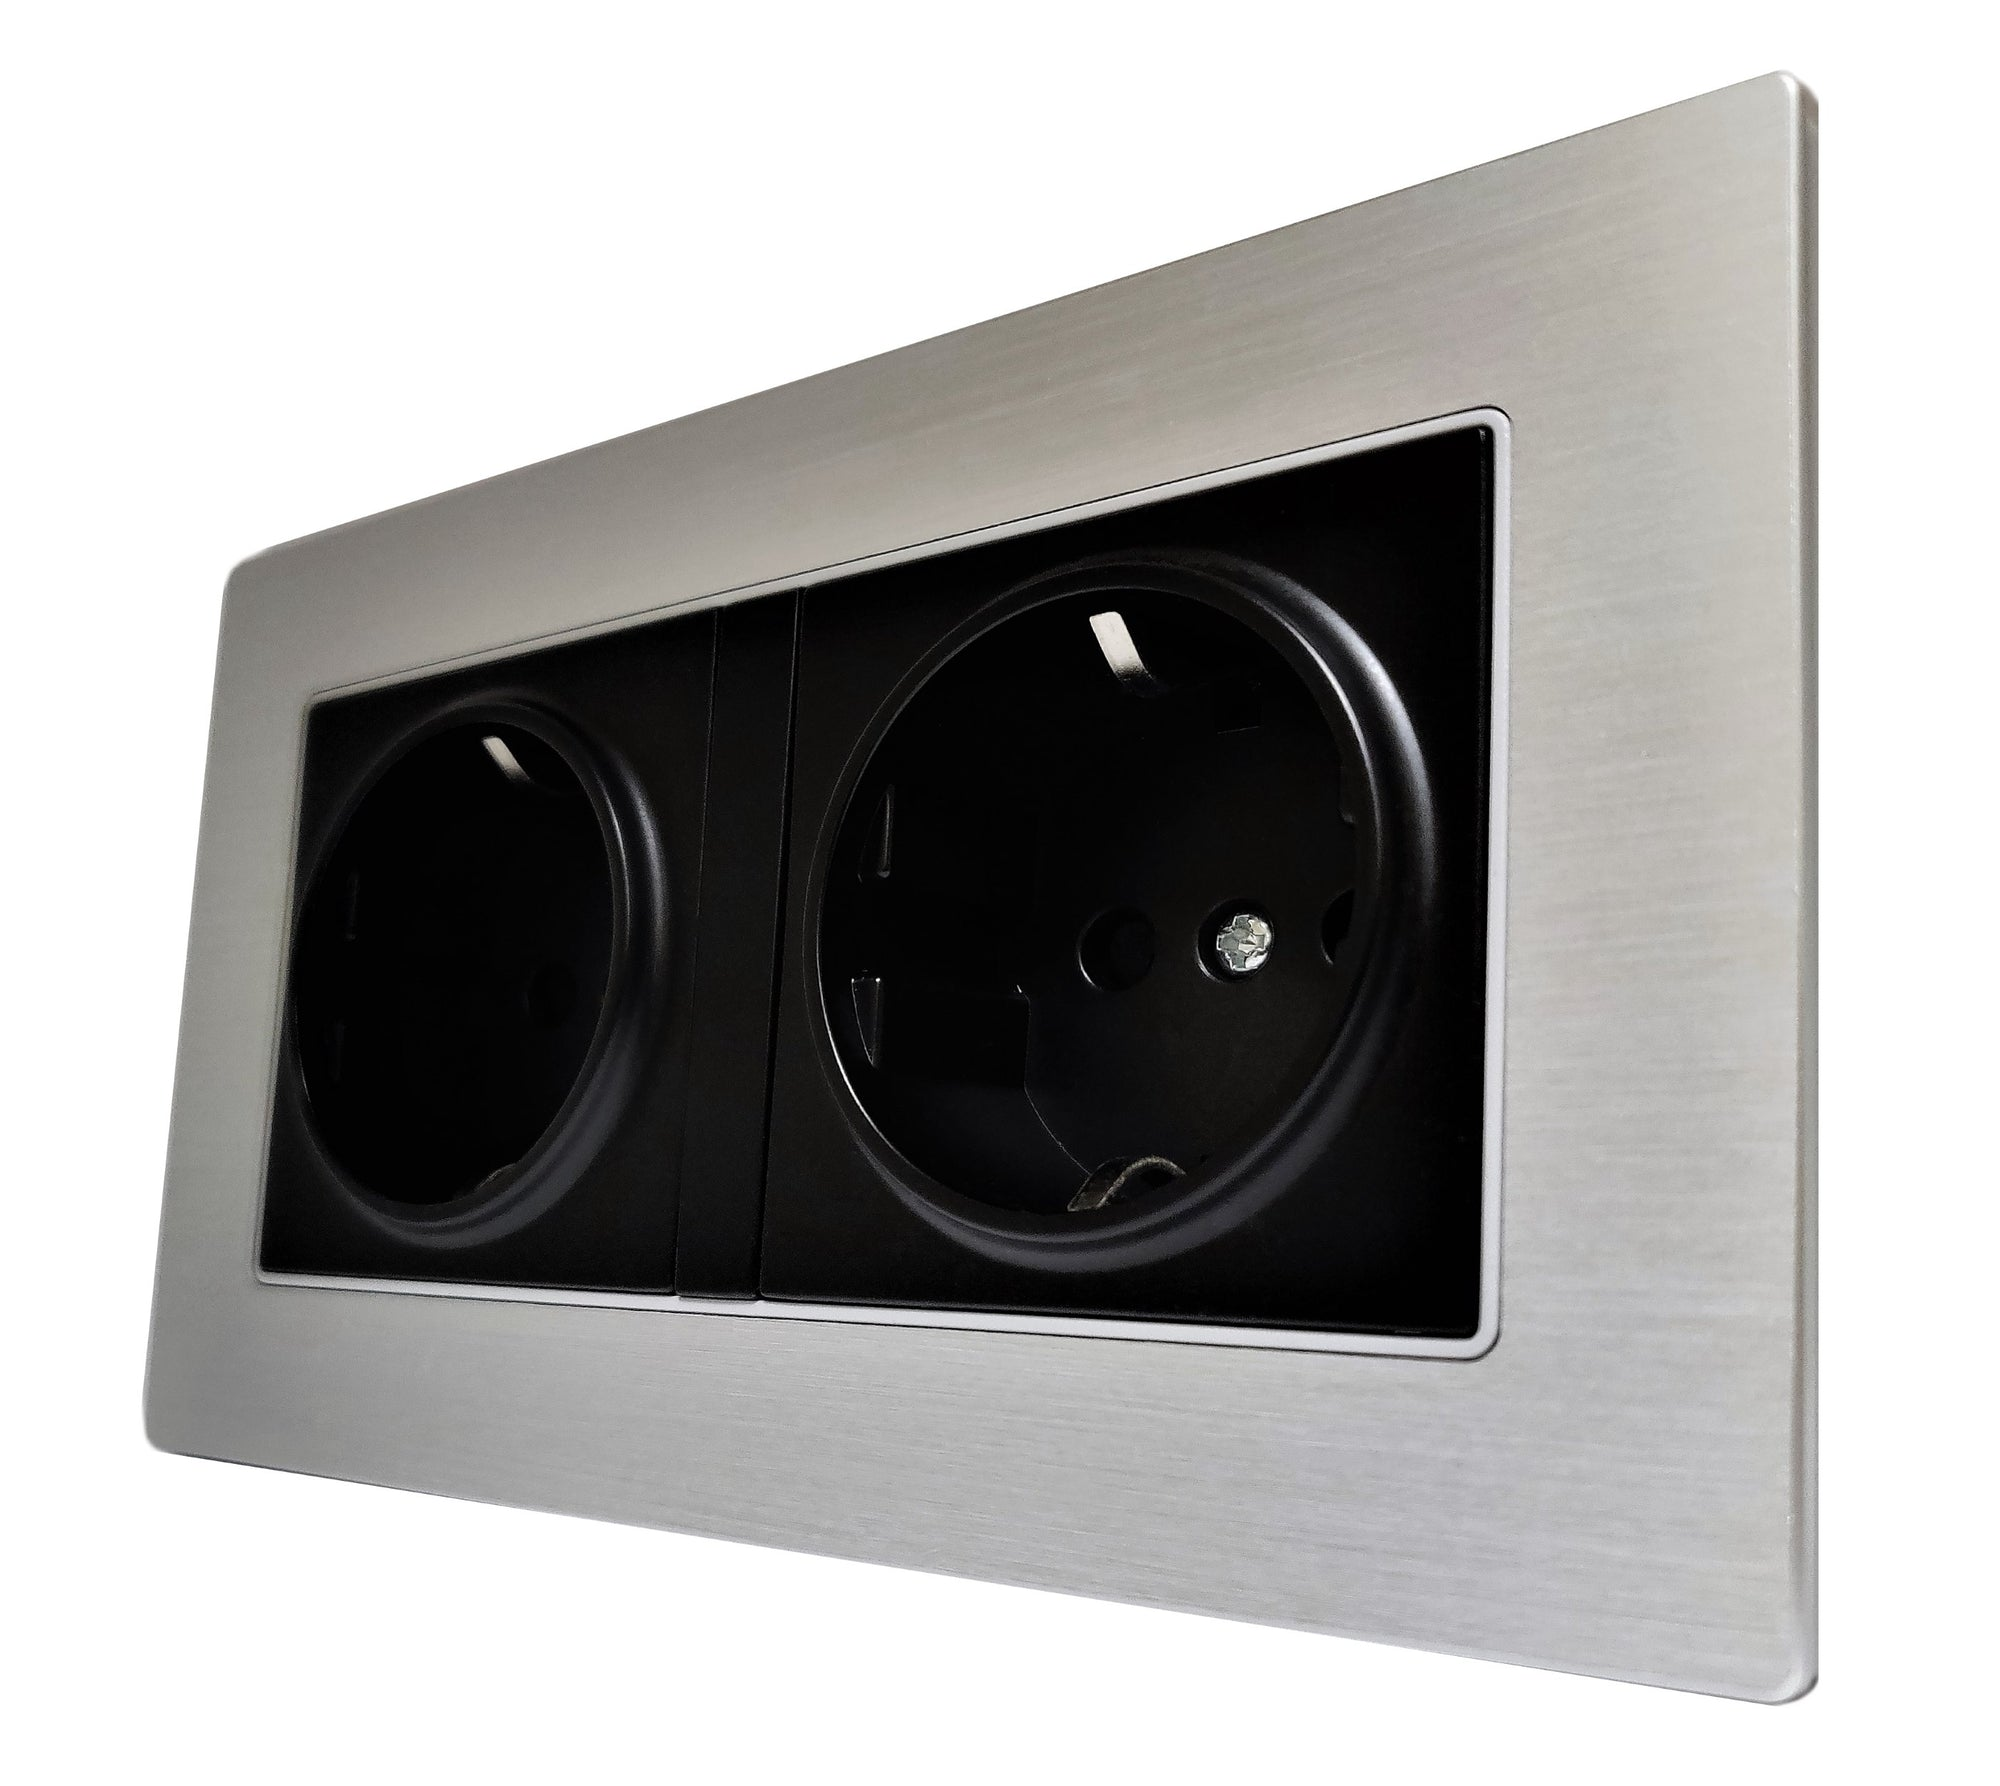 Double Schuko EU 16A 2-Pin AC Wall Power Socket in Silver Brushed Alum Frame & Black Centre